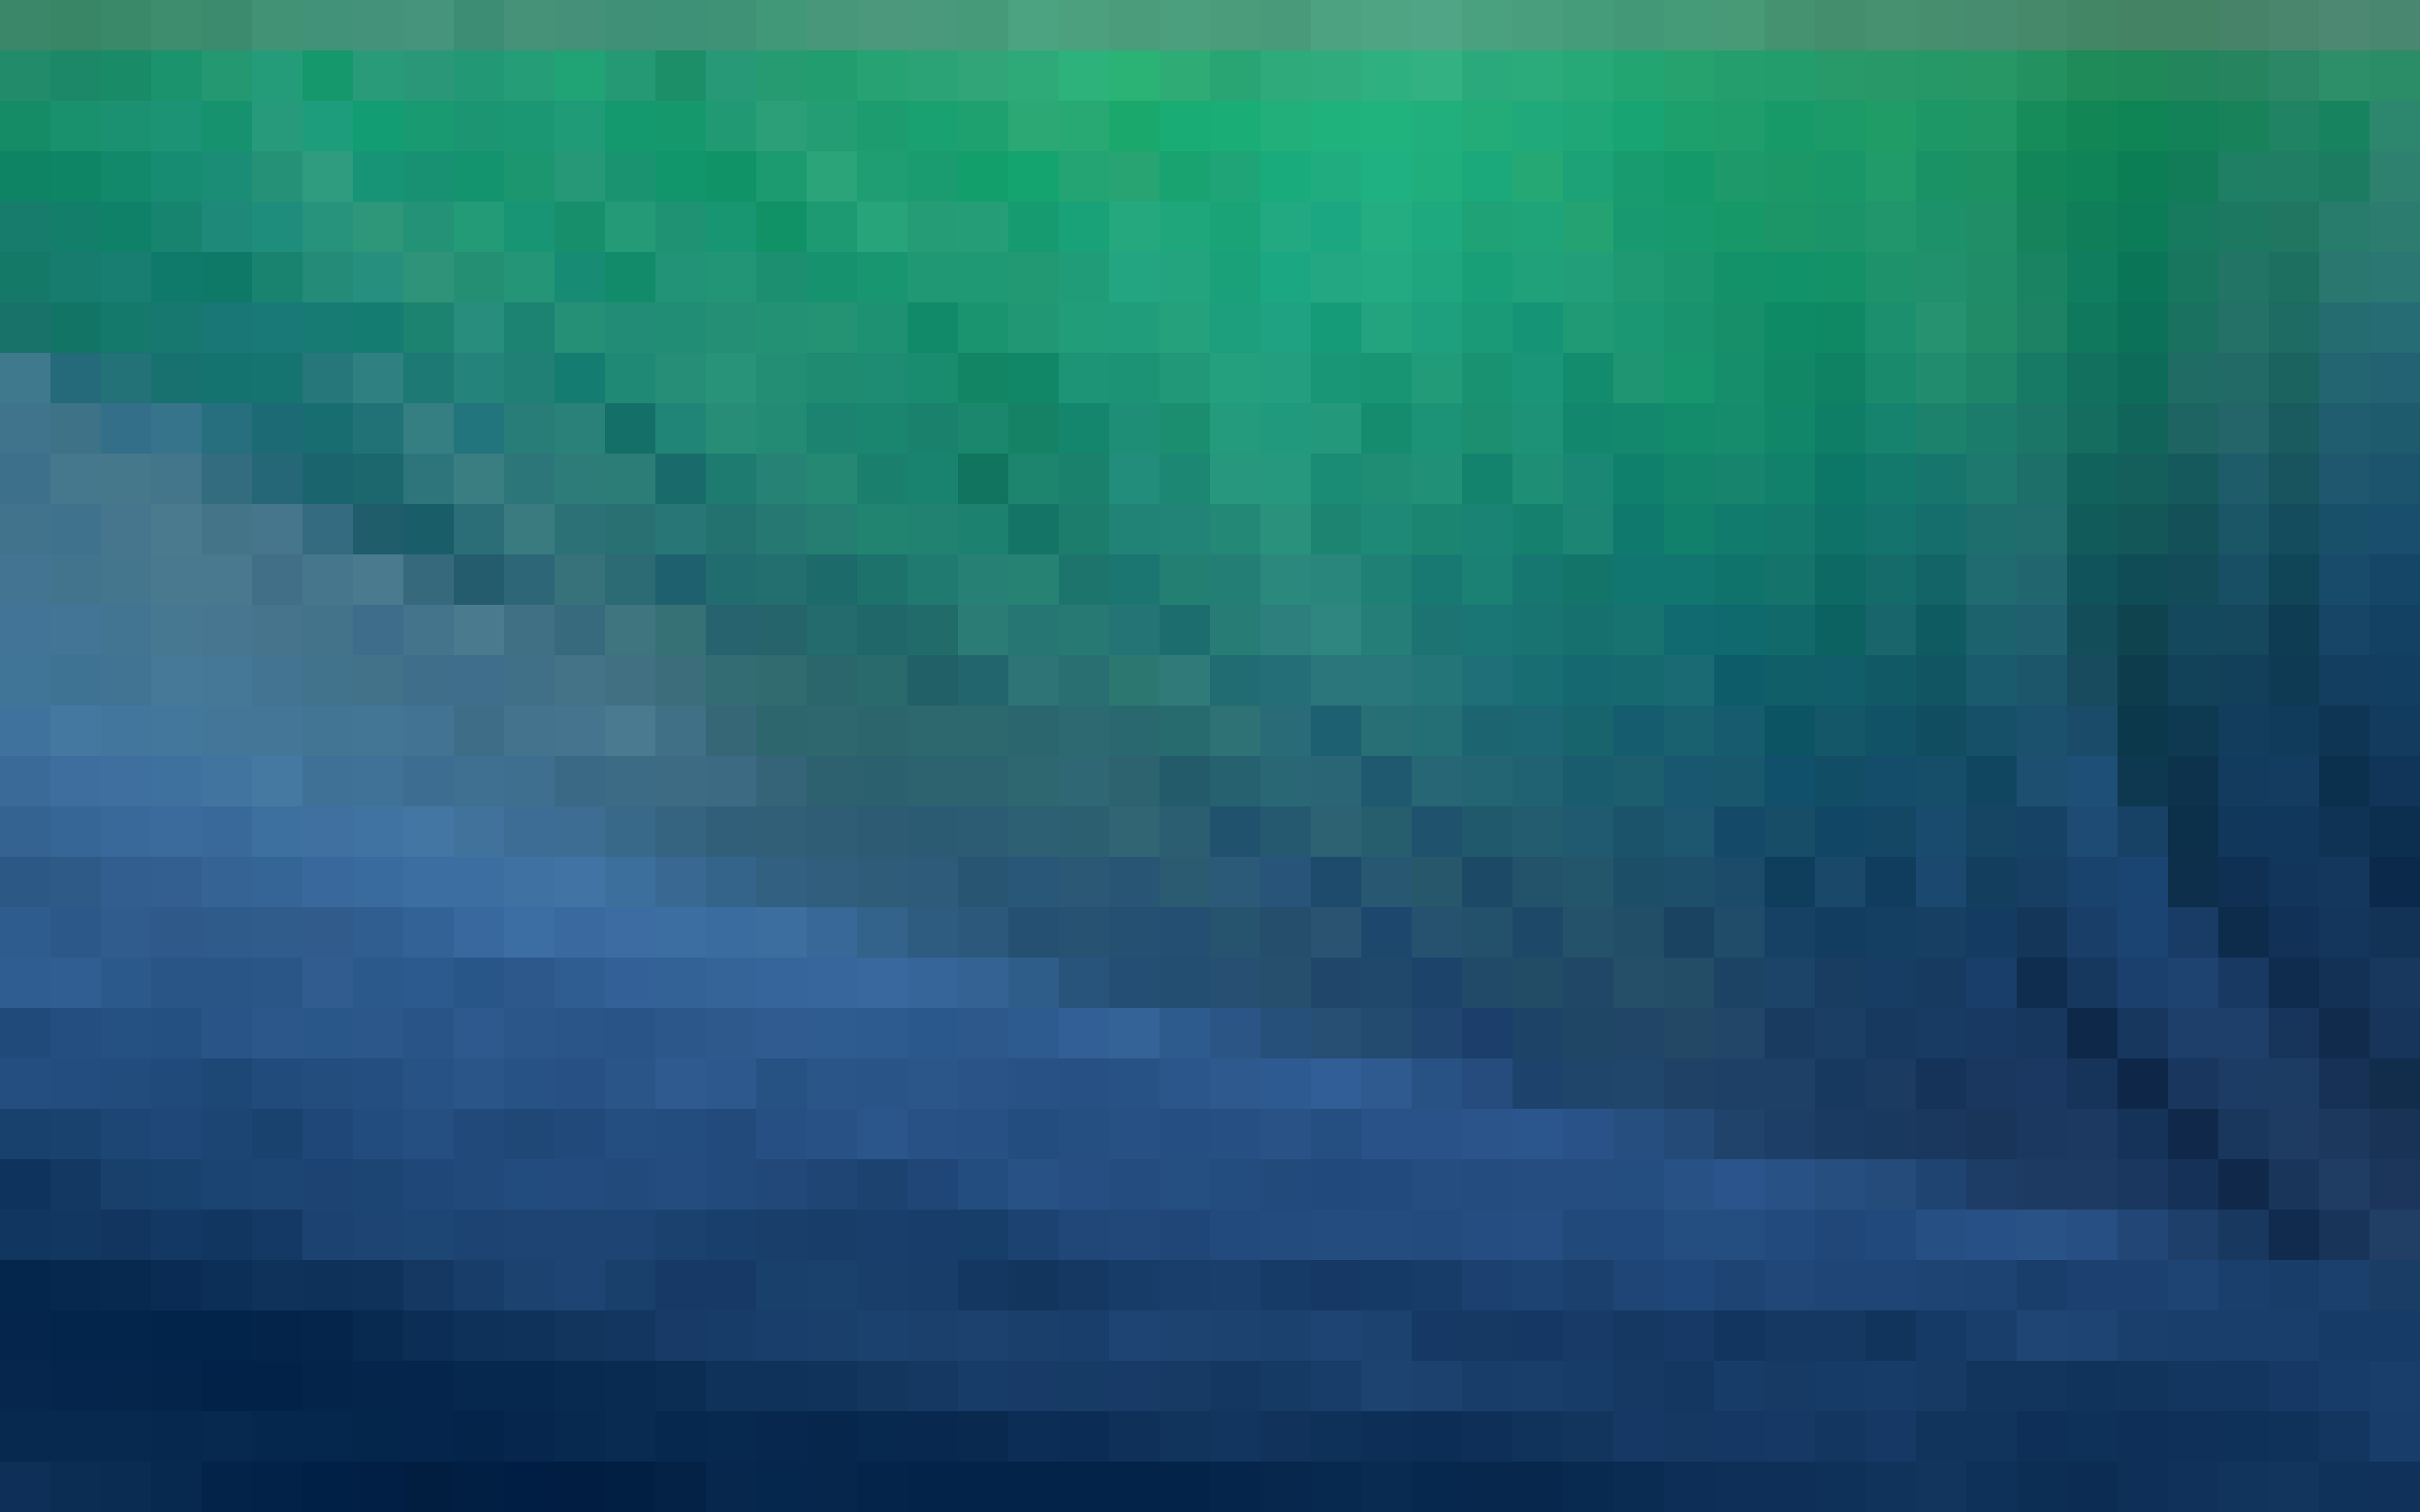 2880x1800 Os X Mavericks Desktop Backgrounds